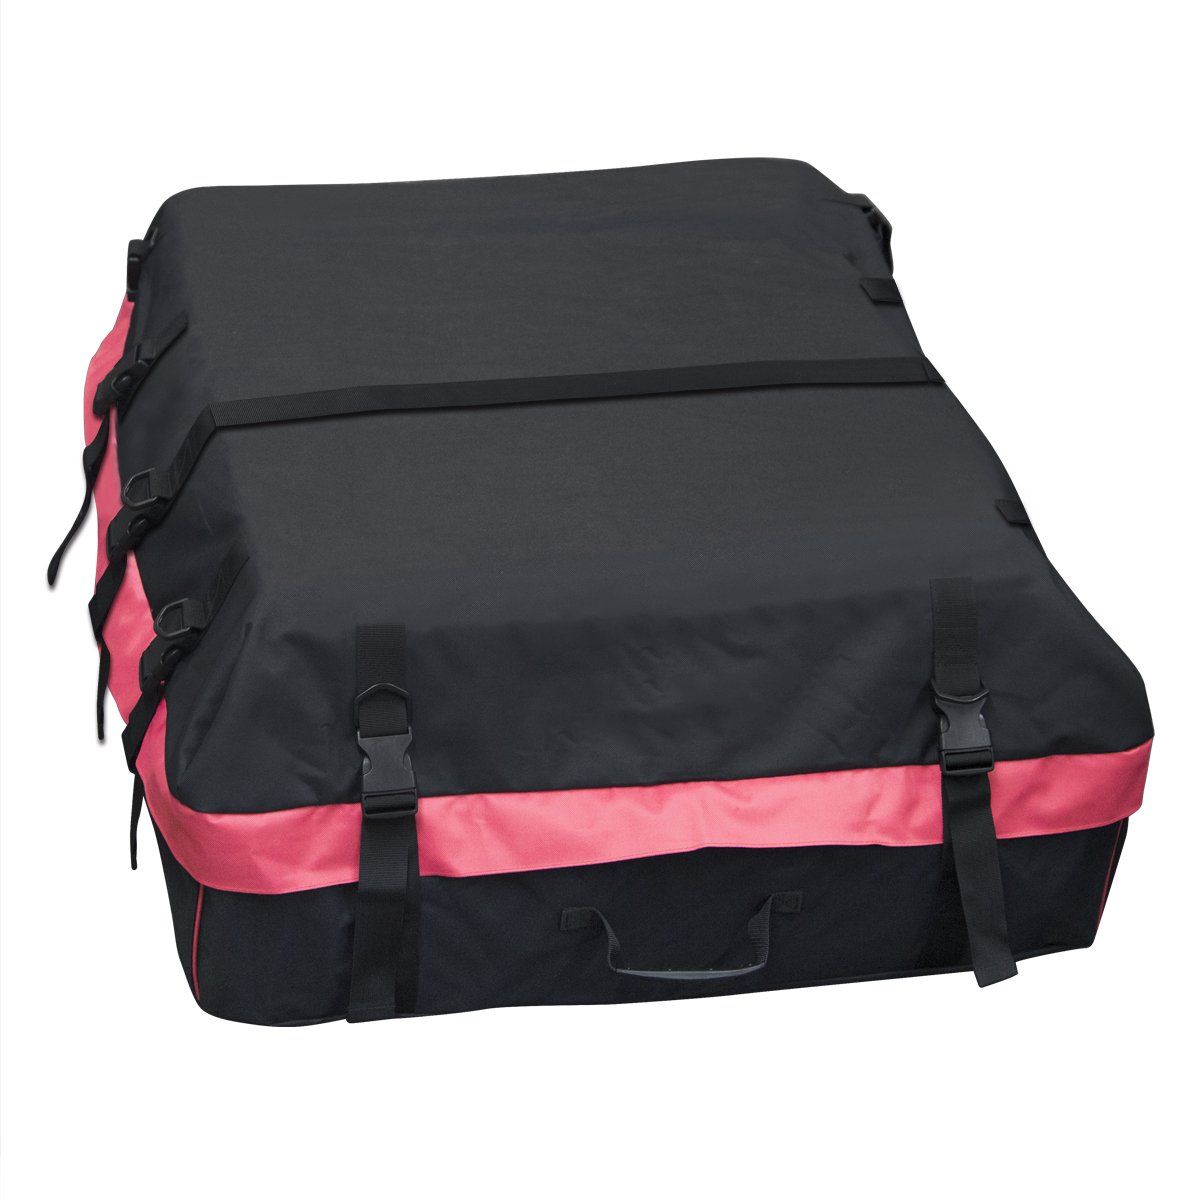 Car Roof Bag Cargo Bag:Storage Box Roof Top Bag For Travel ,Super Strong Car Top Carrier Waterproof 10 Cubic Feet Storage Box , For Any Car With Roof Rails by Langbo